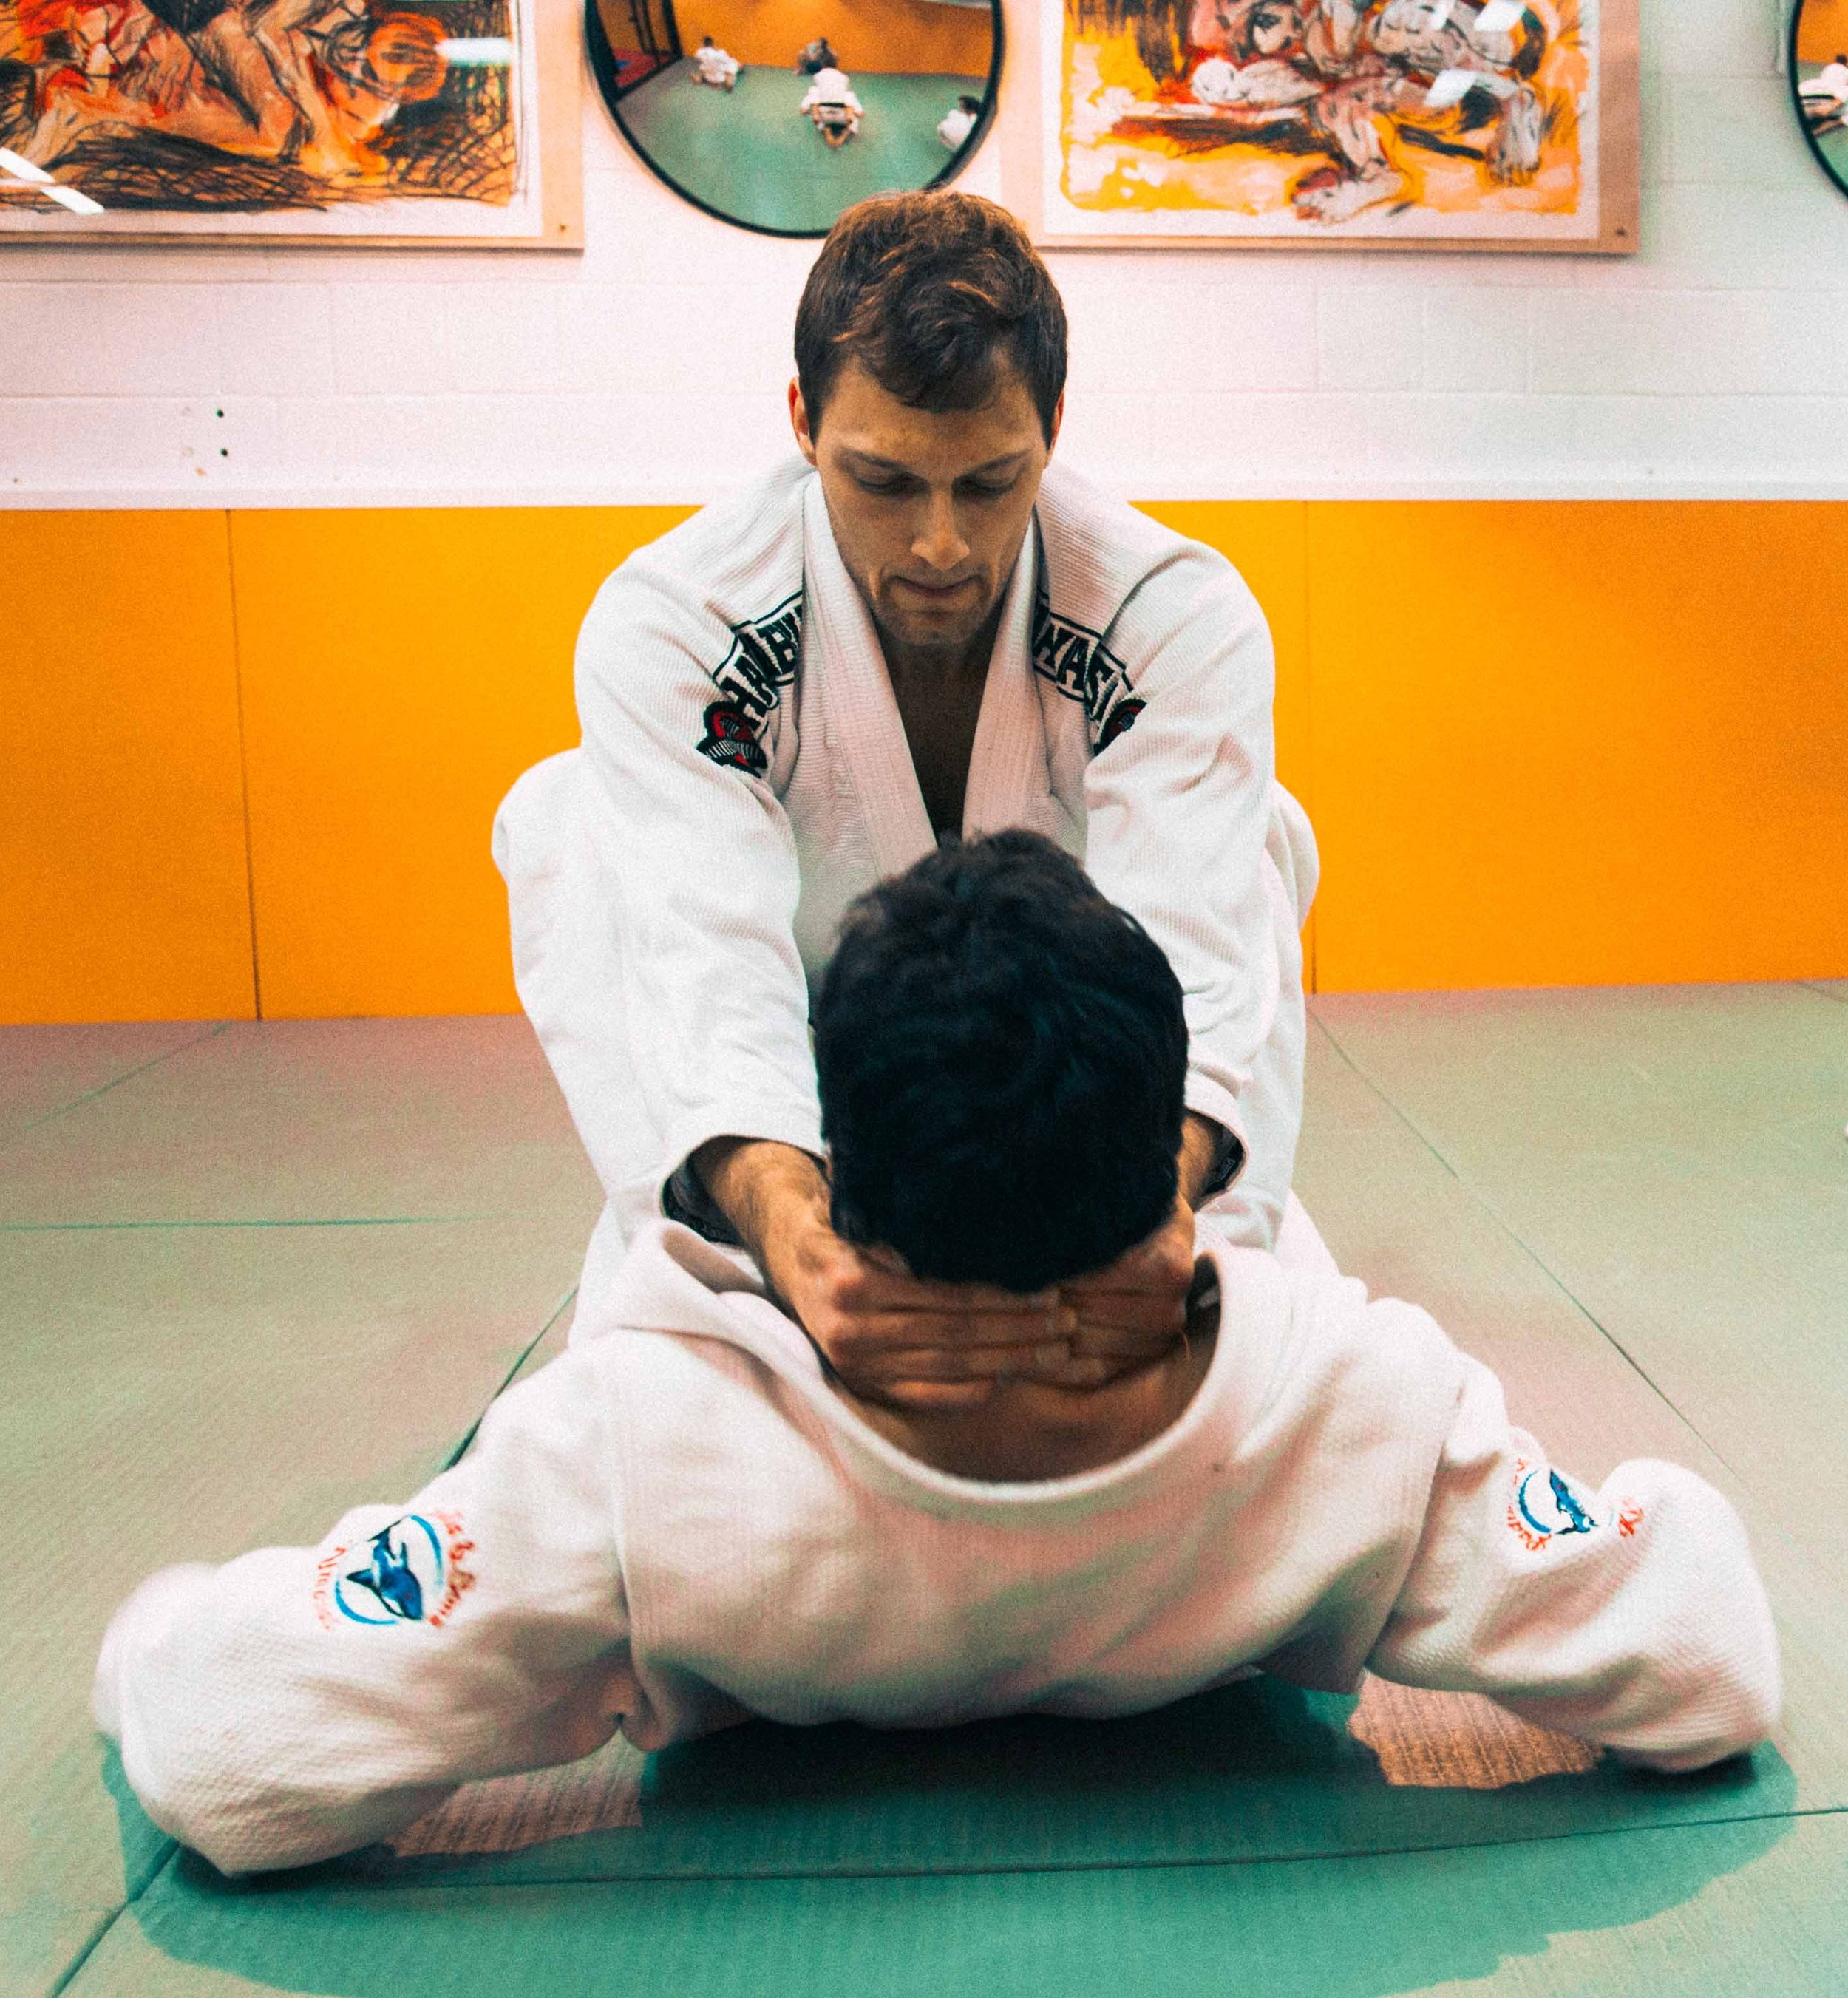 What is Jiu Jitsu? - Jiu Jitsu is a primarily grappling martial art that is categorized into modern day sport Judo and sport brazilian Jiu jitsu. It is often said, one art two sports. Jiu jitsu teaches proper falling, throwing, escapes from being pinned, self-defense from strikes, and submissions.